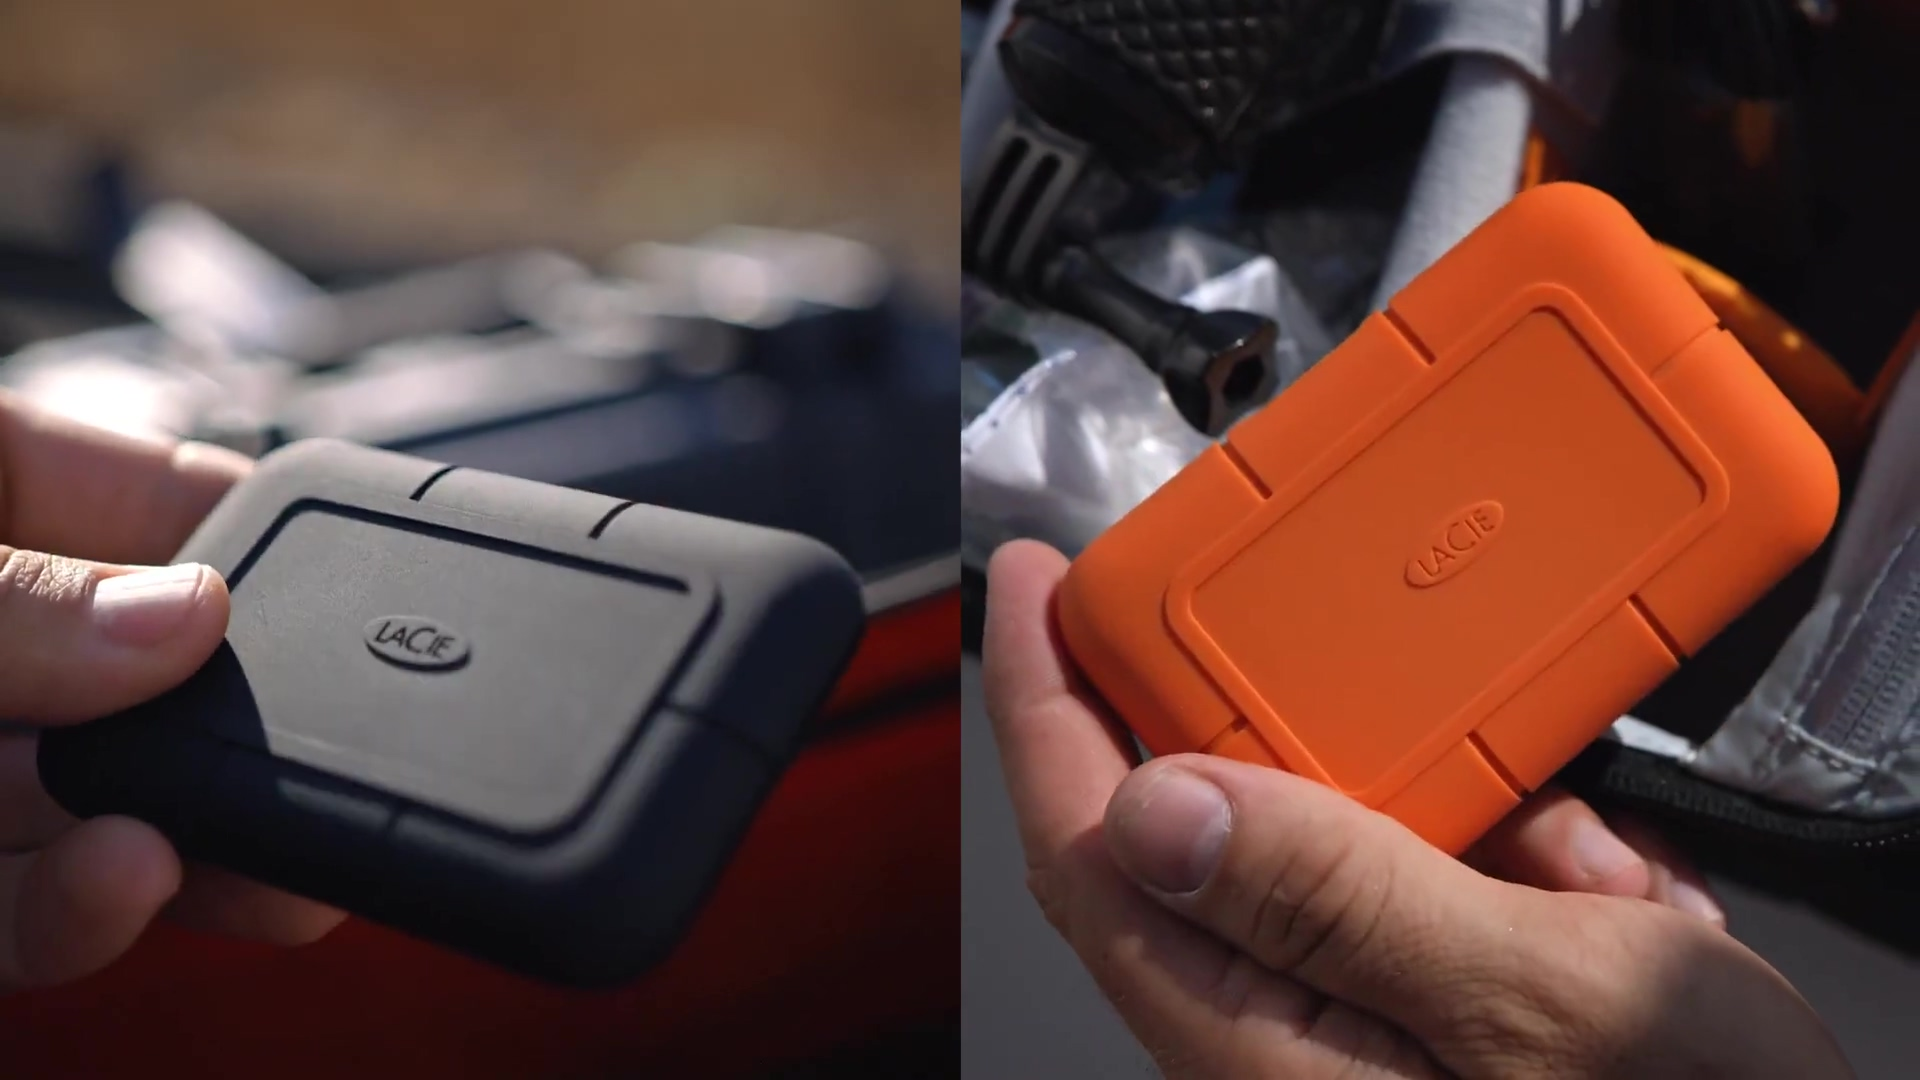 y2mate.com - LaCie I Be Ultra Fast and Beyond Rugged with Rugged SSD & SSD Pro_1080p